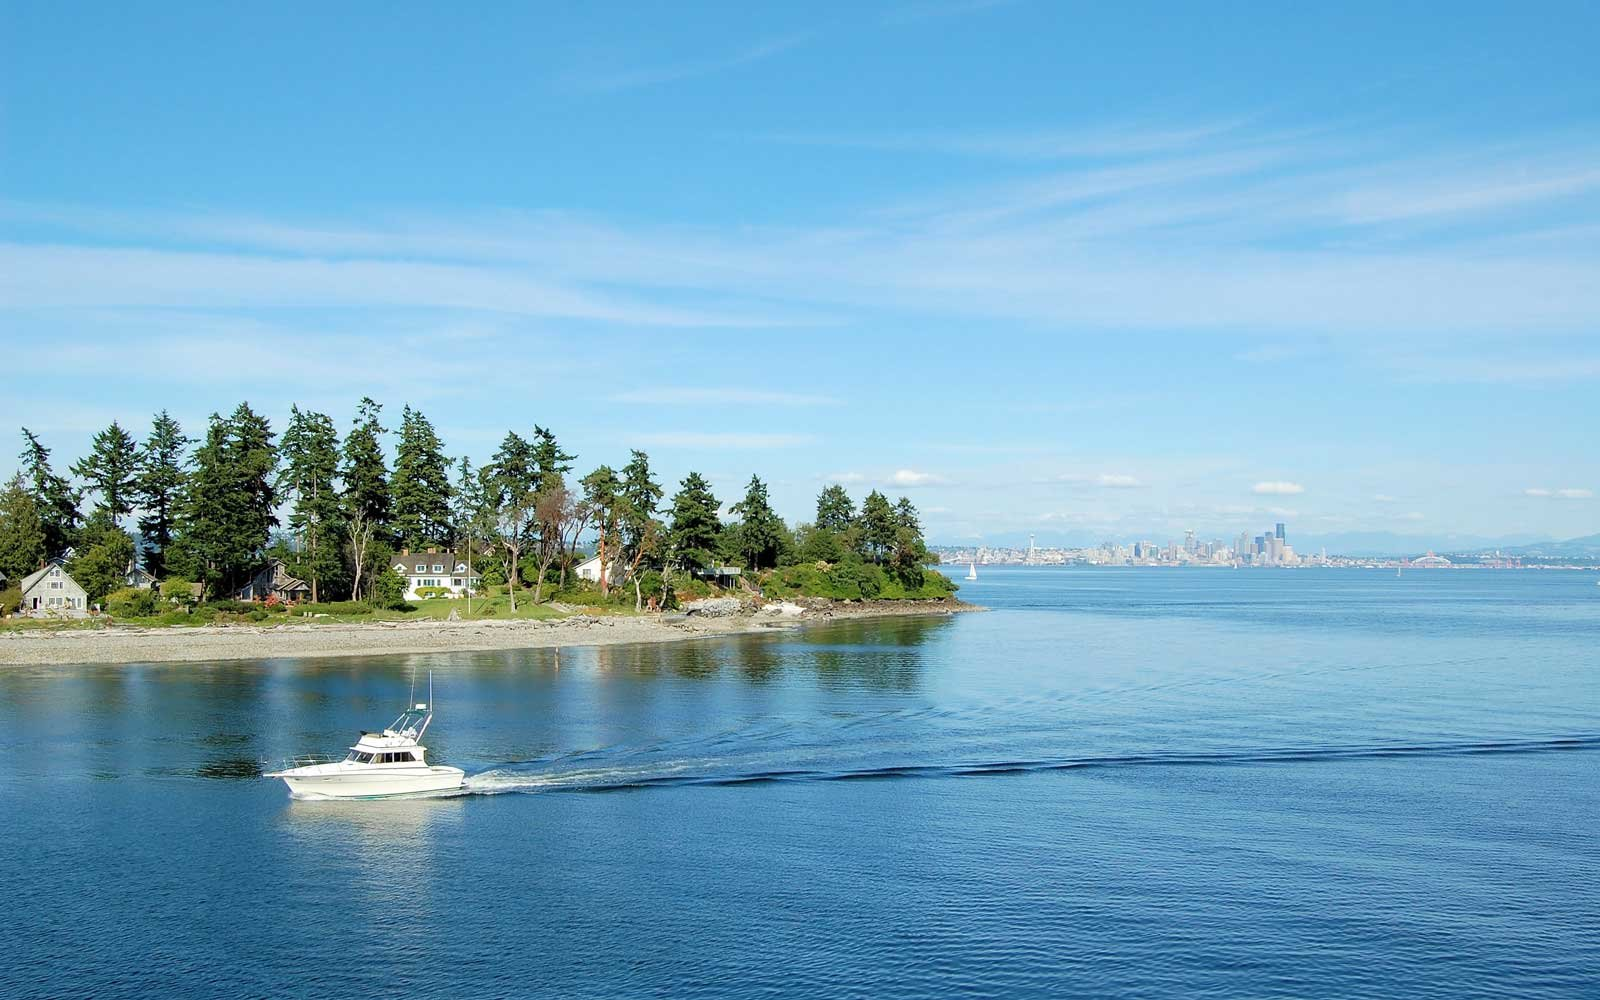 10. Bainbridge Island, Washington